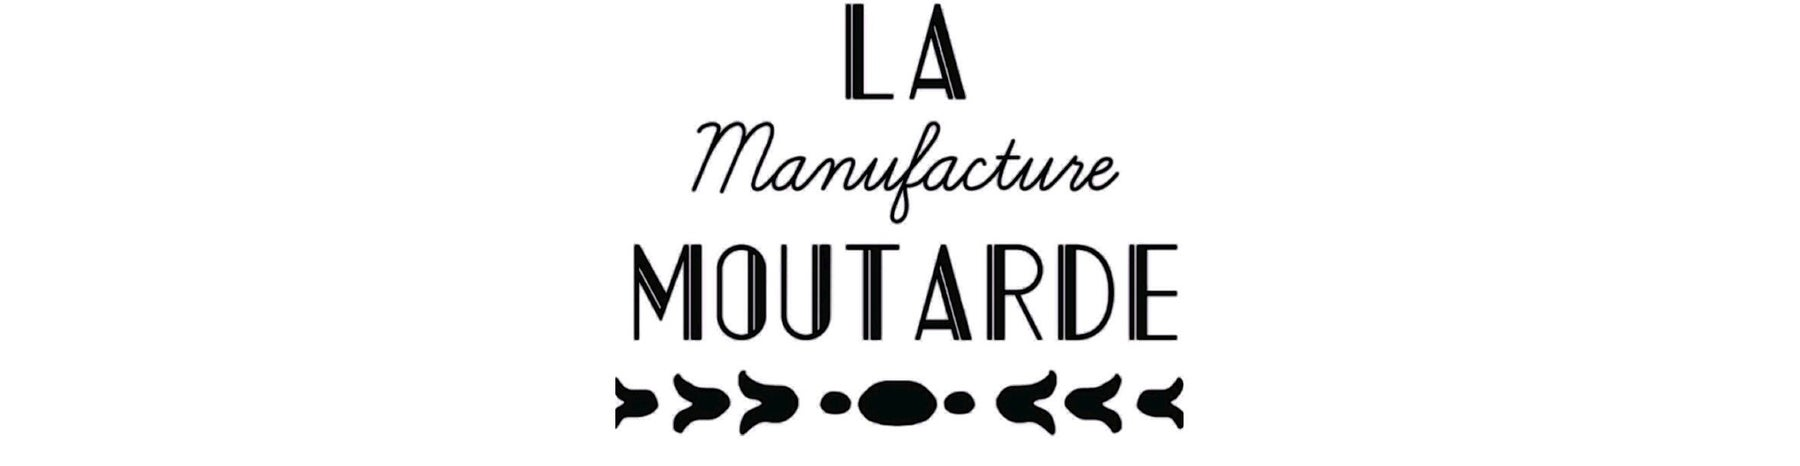 La manufacture moutarde